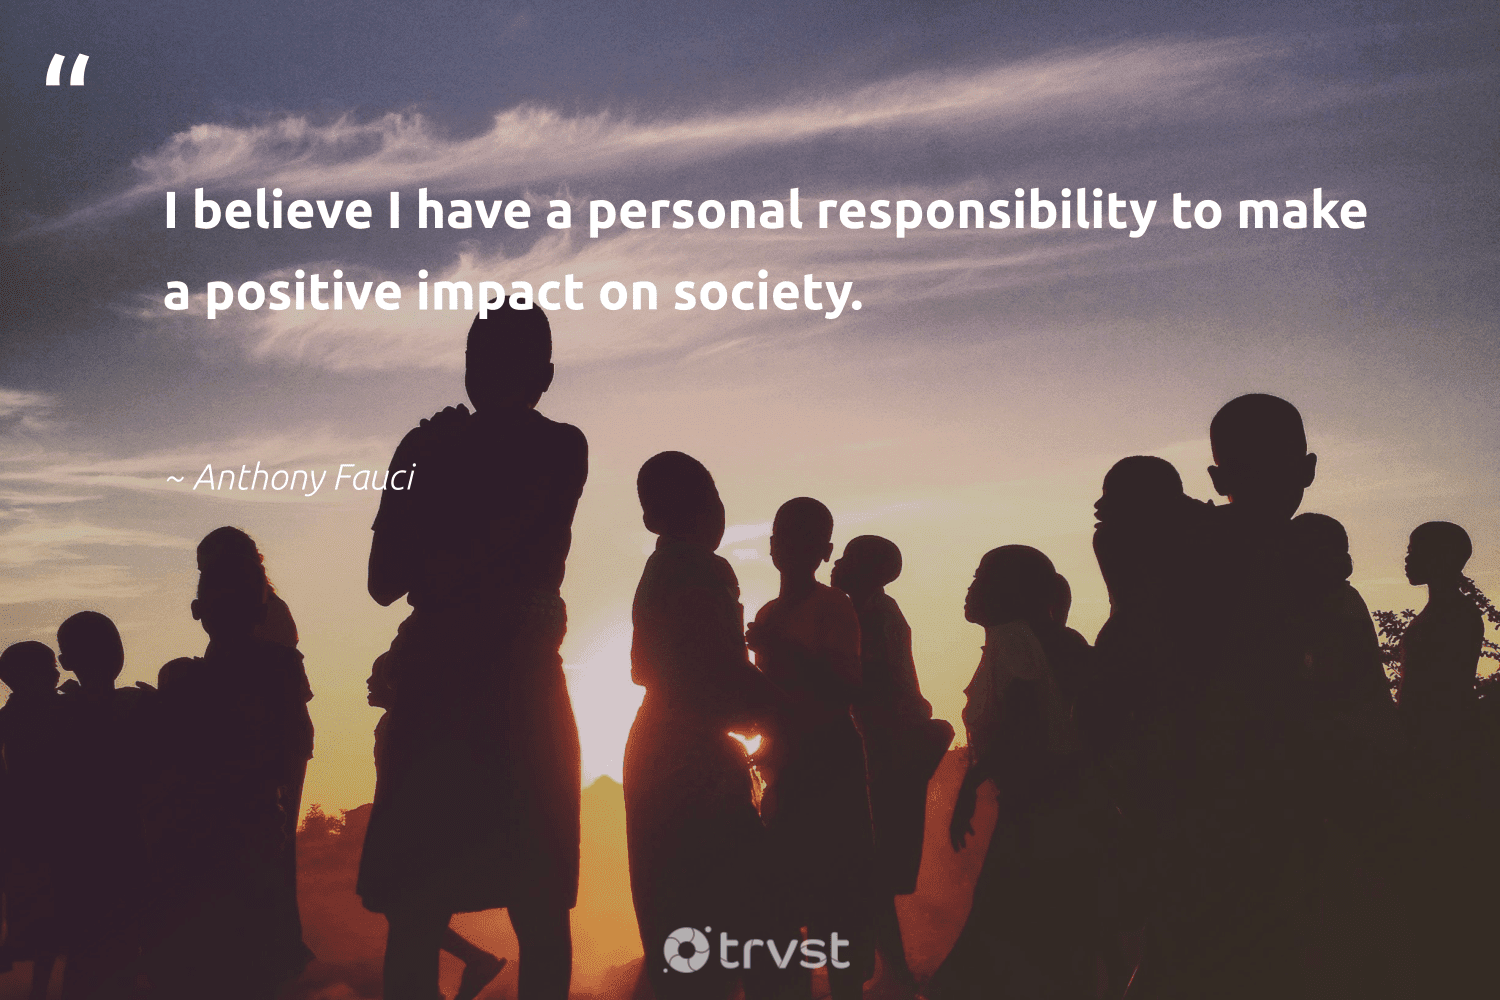 """""""I believe I have a personal responsibility to make a positive impact on society.""""  - Anthony Fauci #trvst #quotes #impact #society #communities #dotherightthing #bethechange #takeaction #betterplanet #dogood #strongercommunities #changetheworld"""